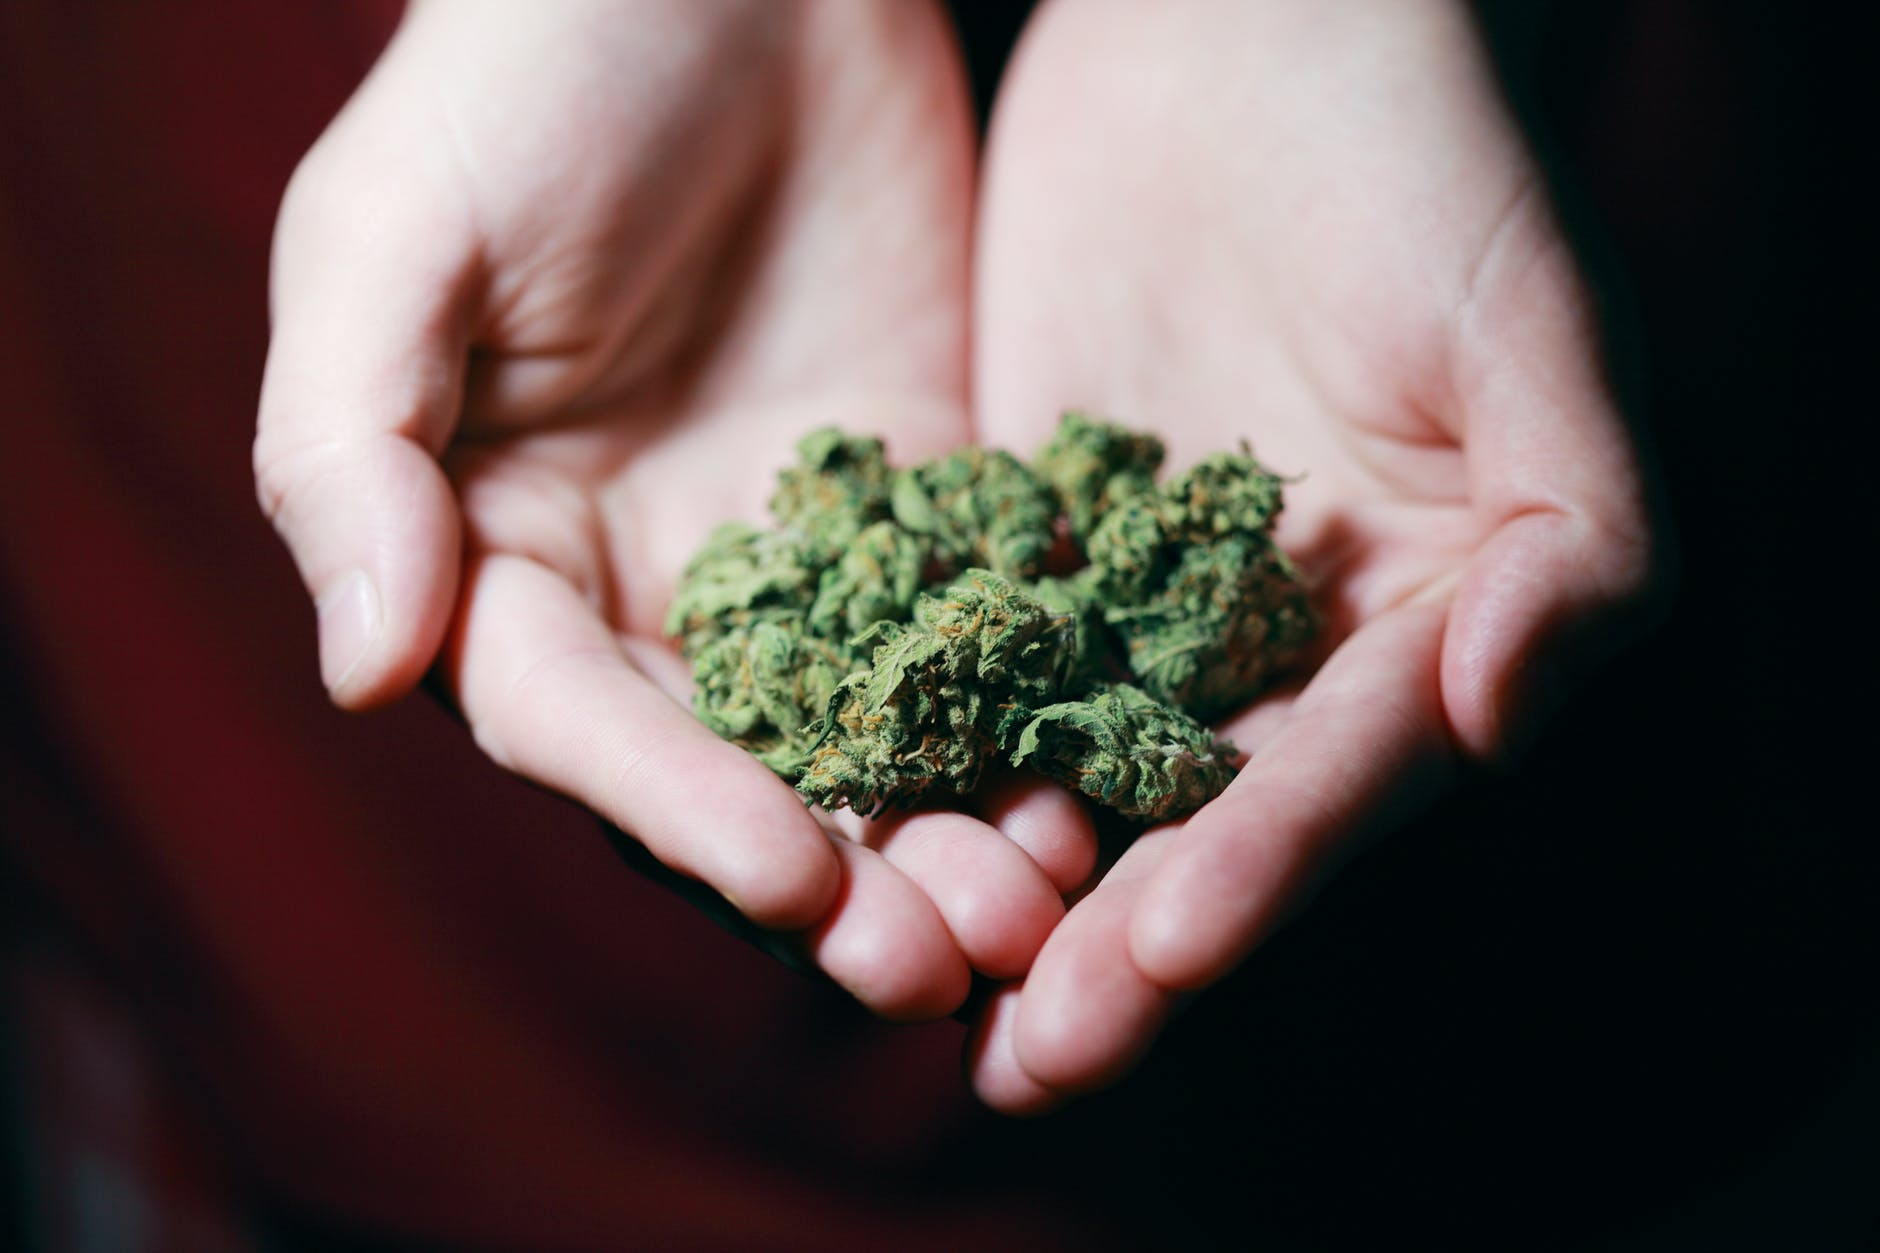 The Best Way to Consume Marijuana [Complete Guide]